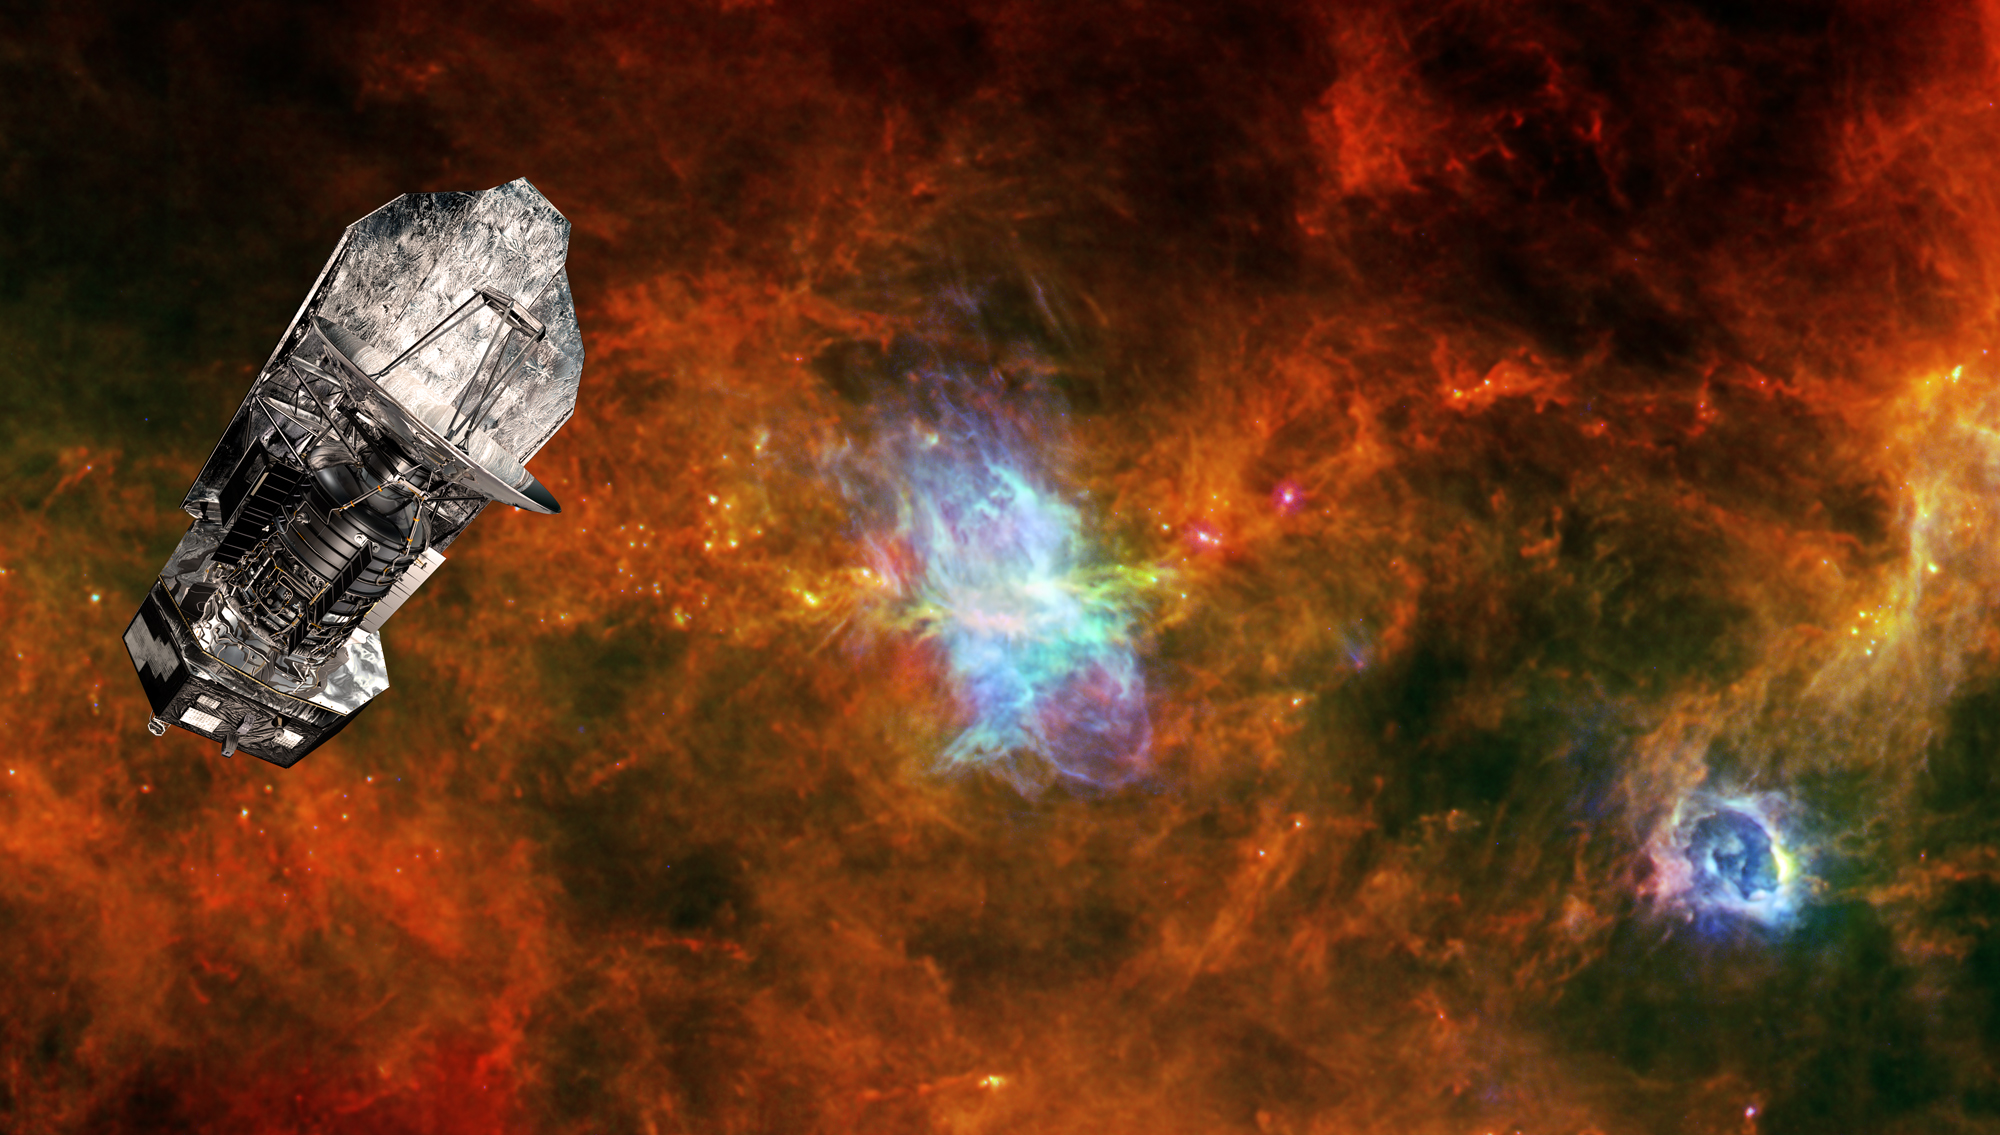 The Herschel infrared space observatory is the largest and most powerful of its kind ever launched into space.